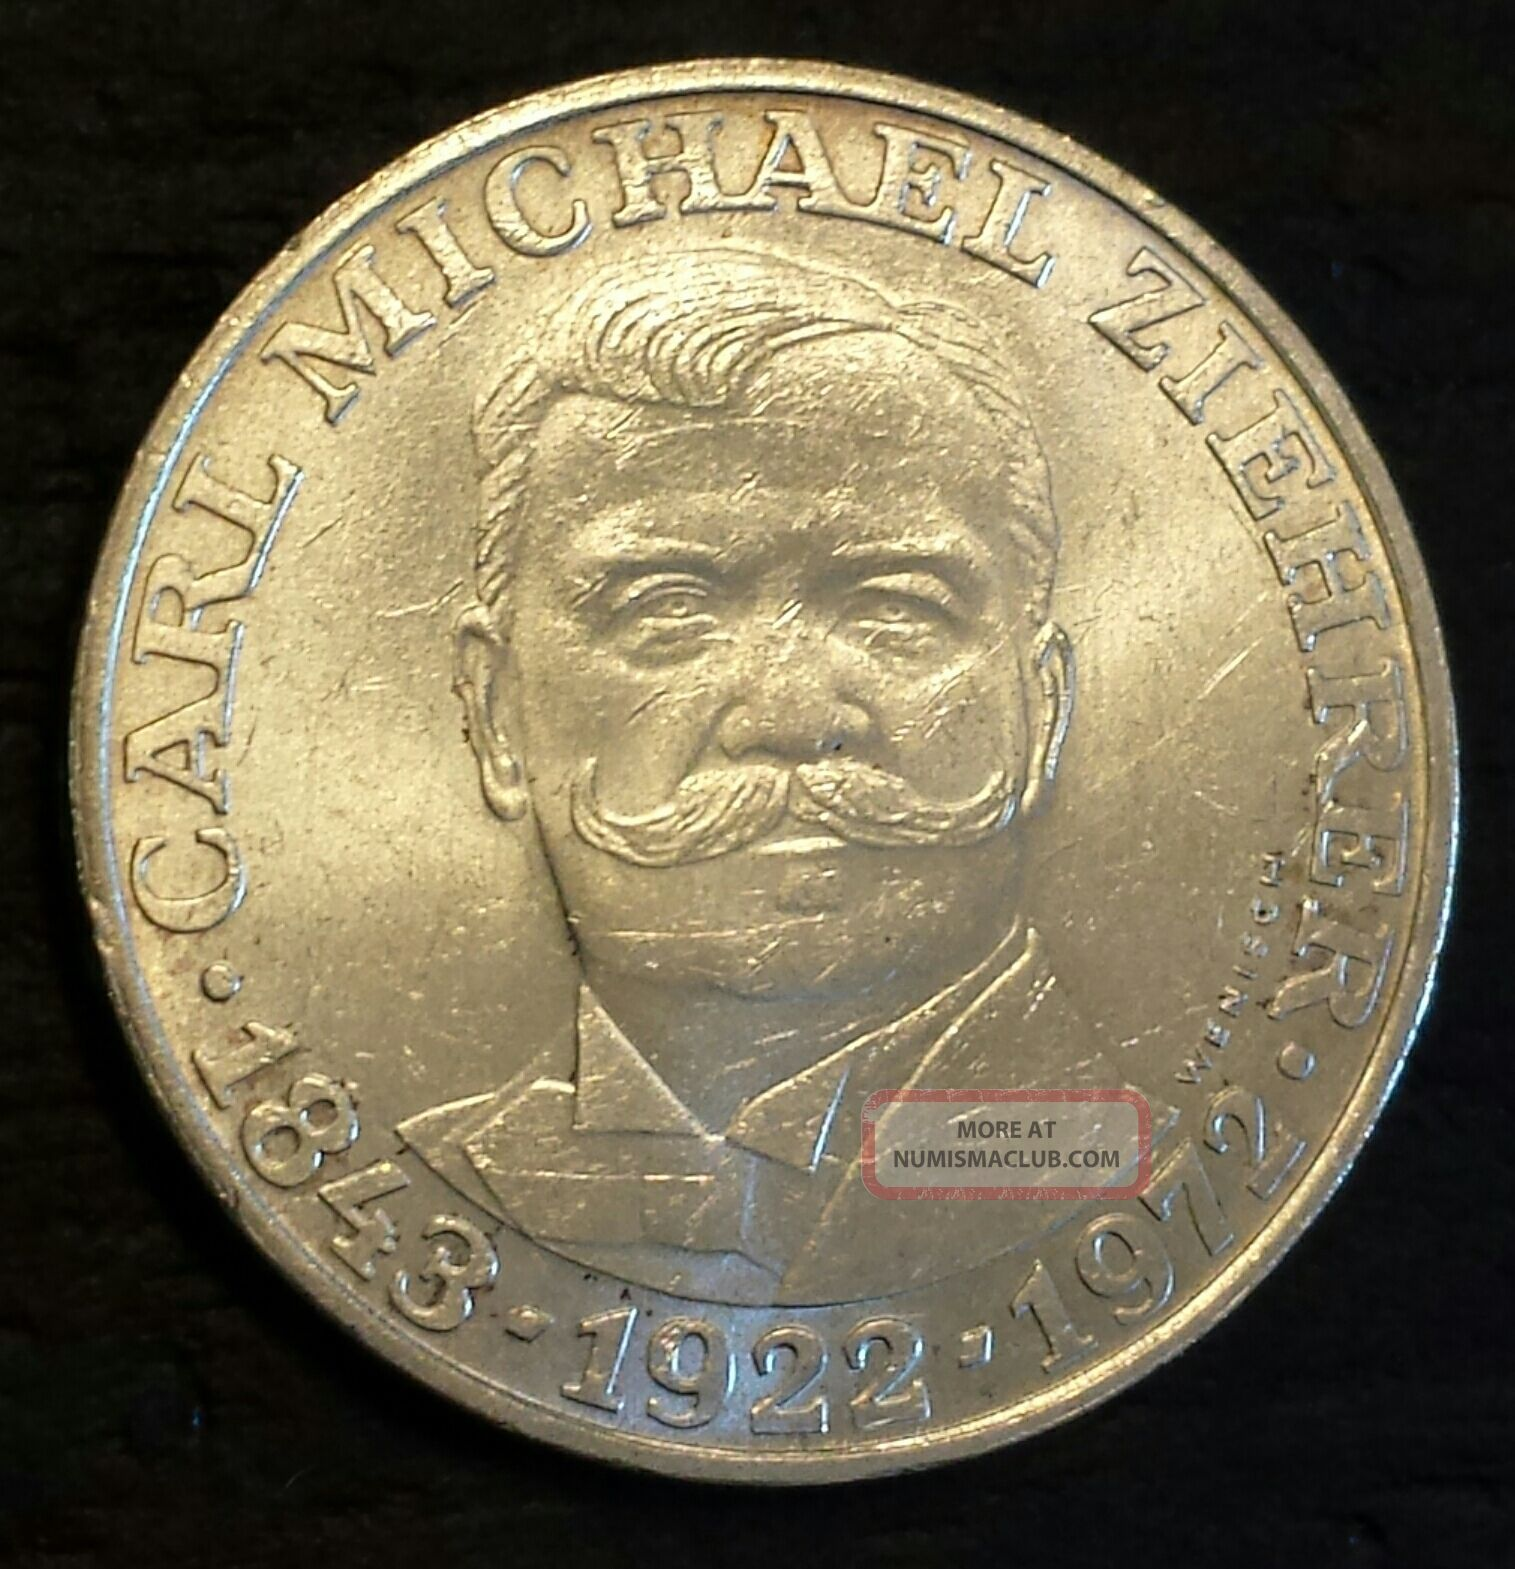 Austria 25 Schilling,  1972,  50th Anniversary - Death Of Carl M.  Ziehrer,  Compose Other Coins of the World photo